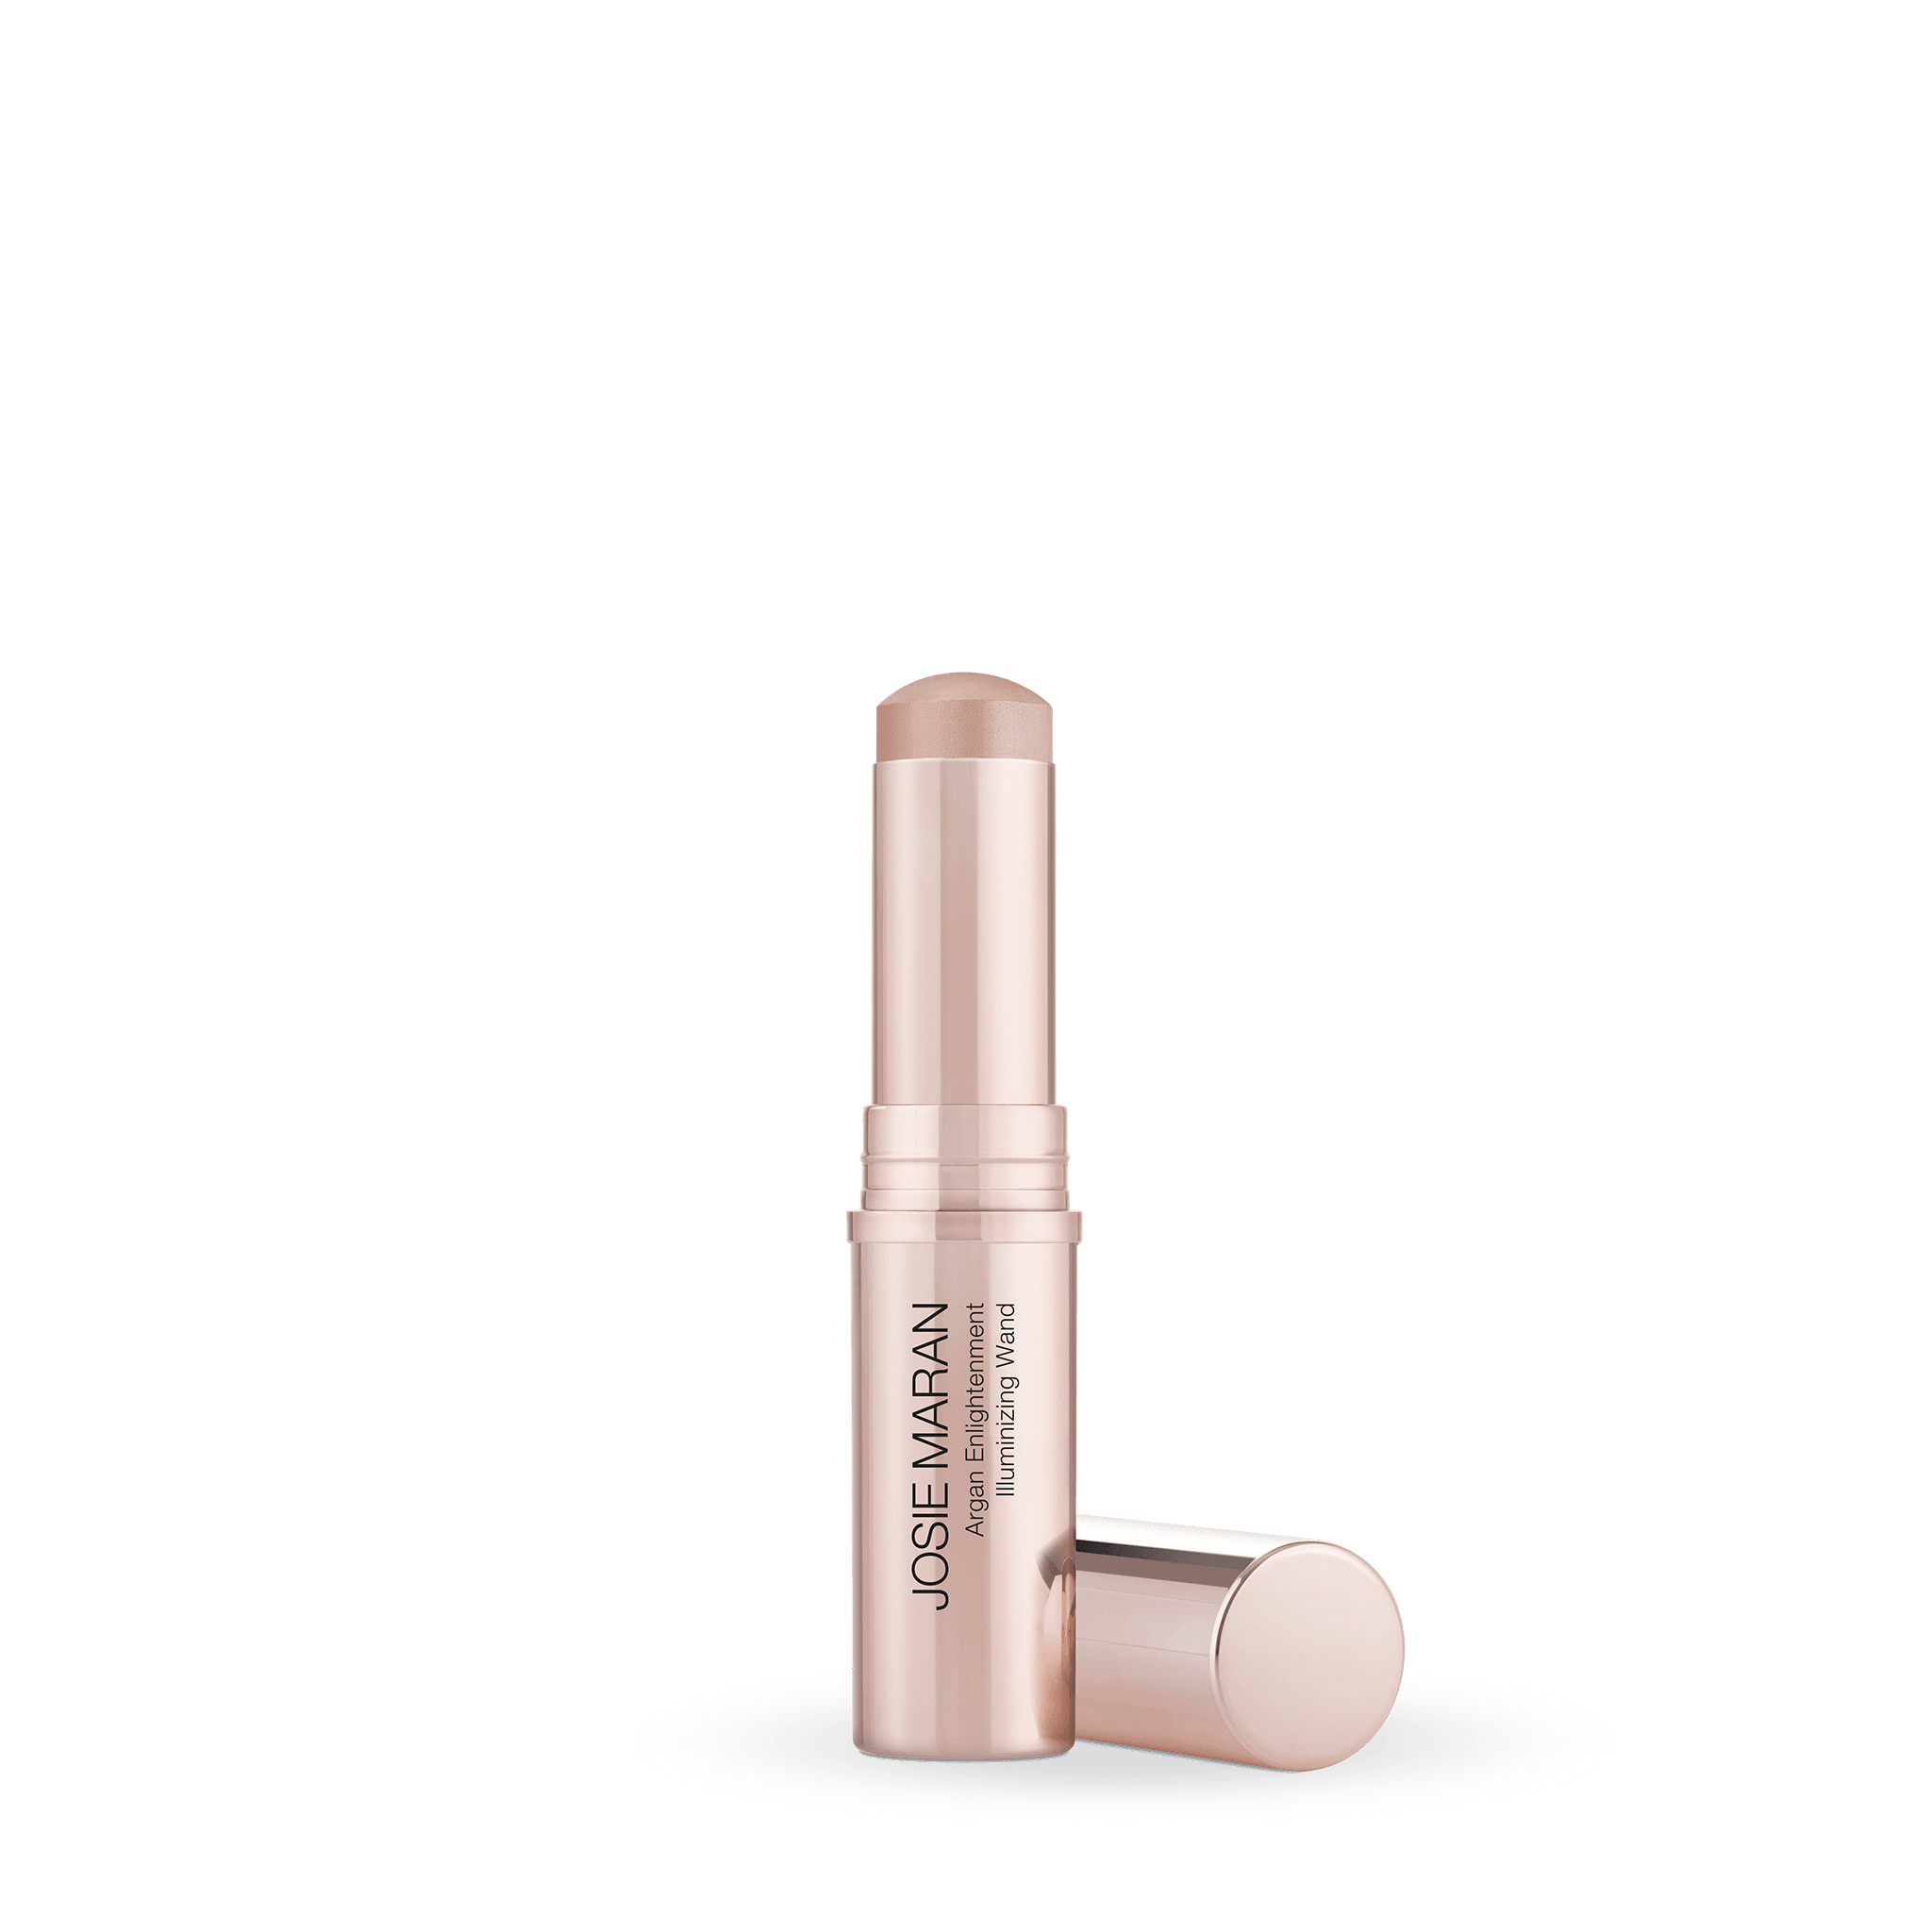 Argan Enlightenment Illuminizing Wand